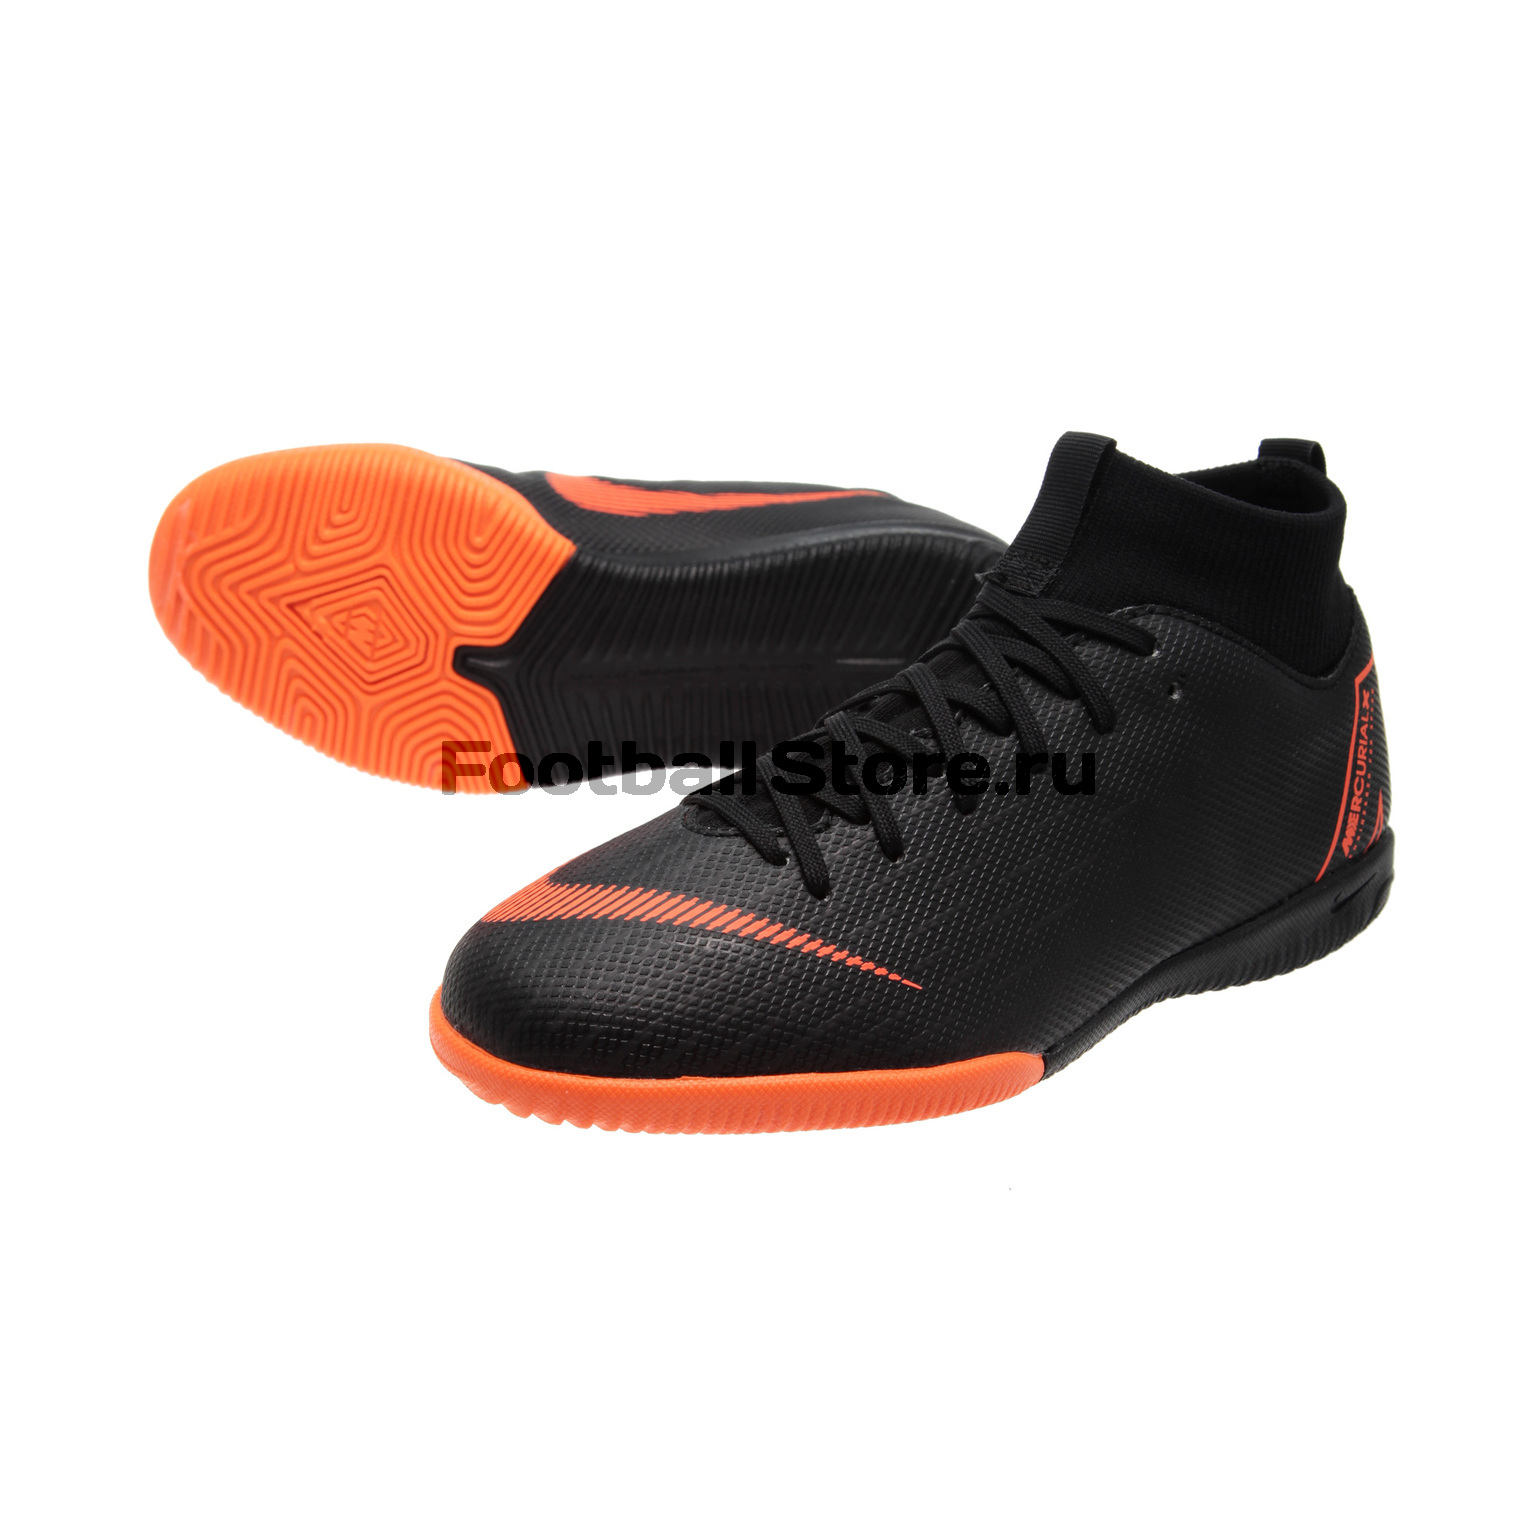 Обувь для зала Nike JR SuperflyX 6 Academy GS IC AH7343-081 бутсы nike phantom 3 academy ag pro ah8845 081